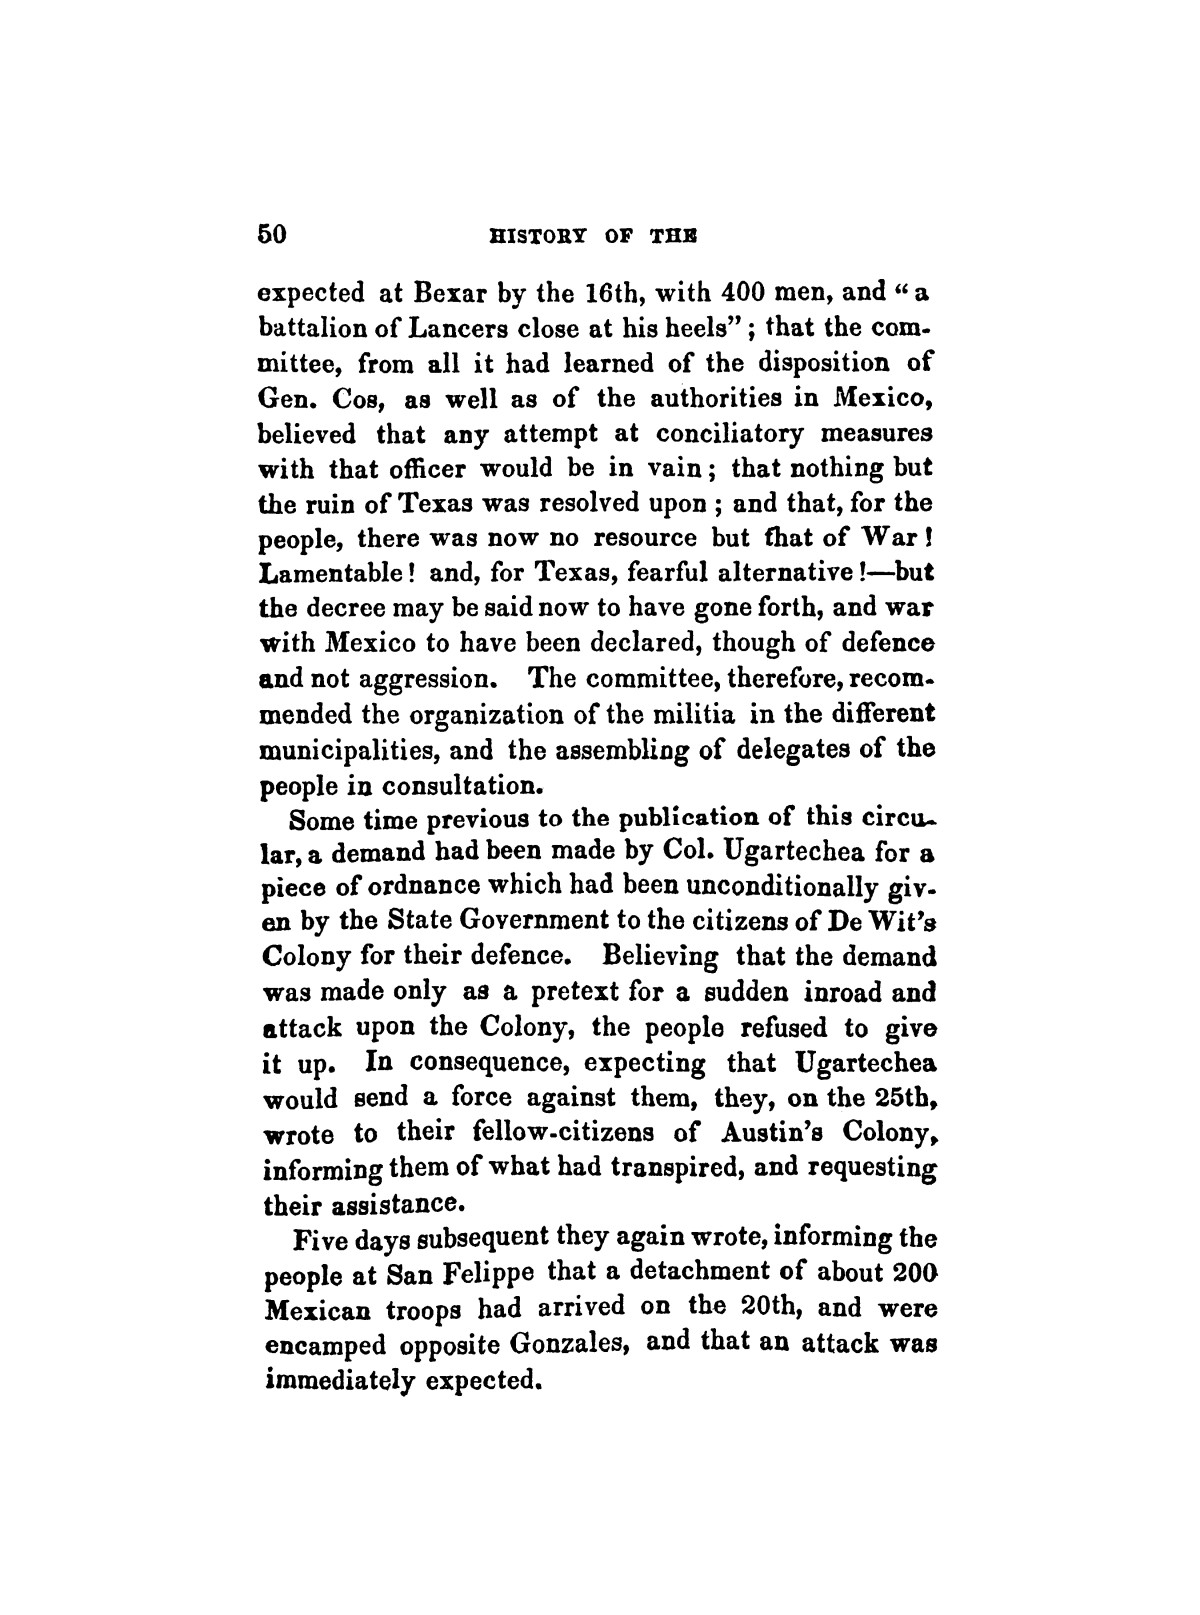 History of the revolution in Texas, particularly of the war of 1835 & '36; together with the latest geographical, topographical, and statistical accounts of the country, from the most authentic sources. Also, an appendix. By the Rev. C. Newell.                                                                                                      [Sequence #]: 62 of 227